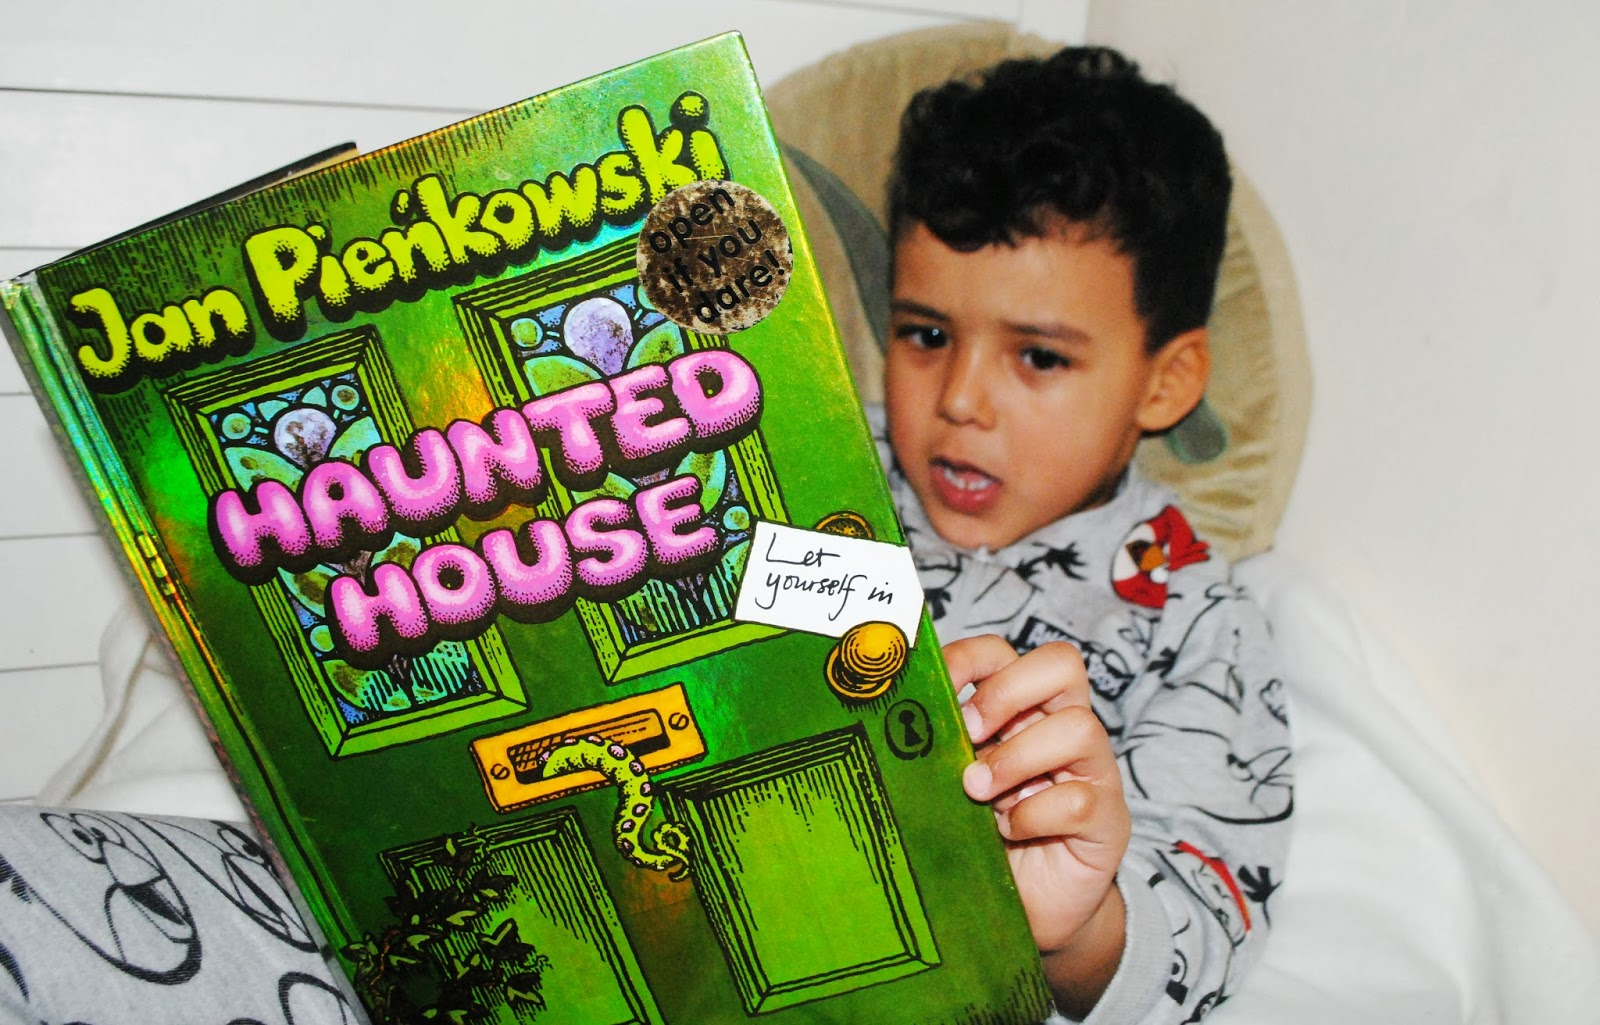 Jan Pienkowski Haunted House Book